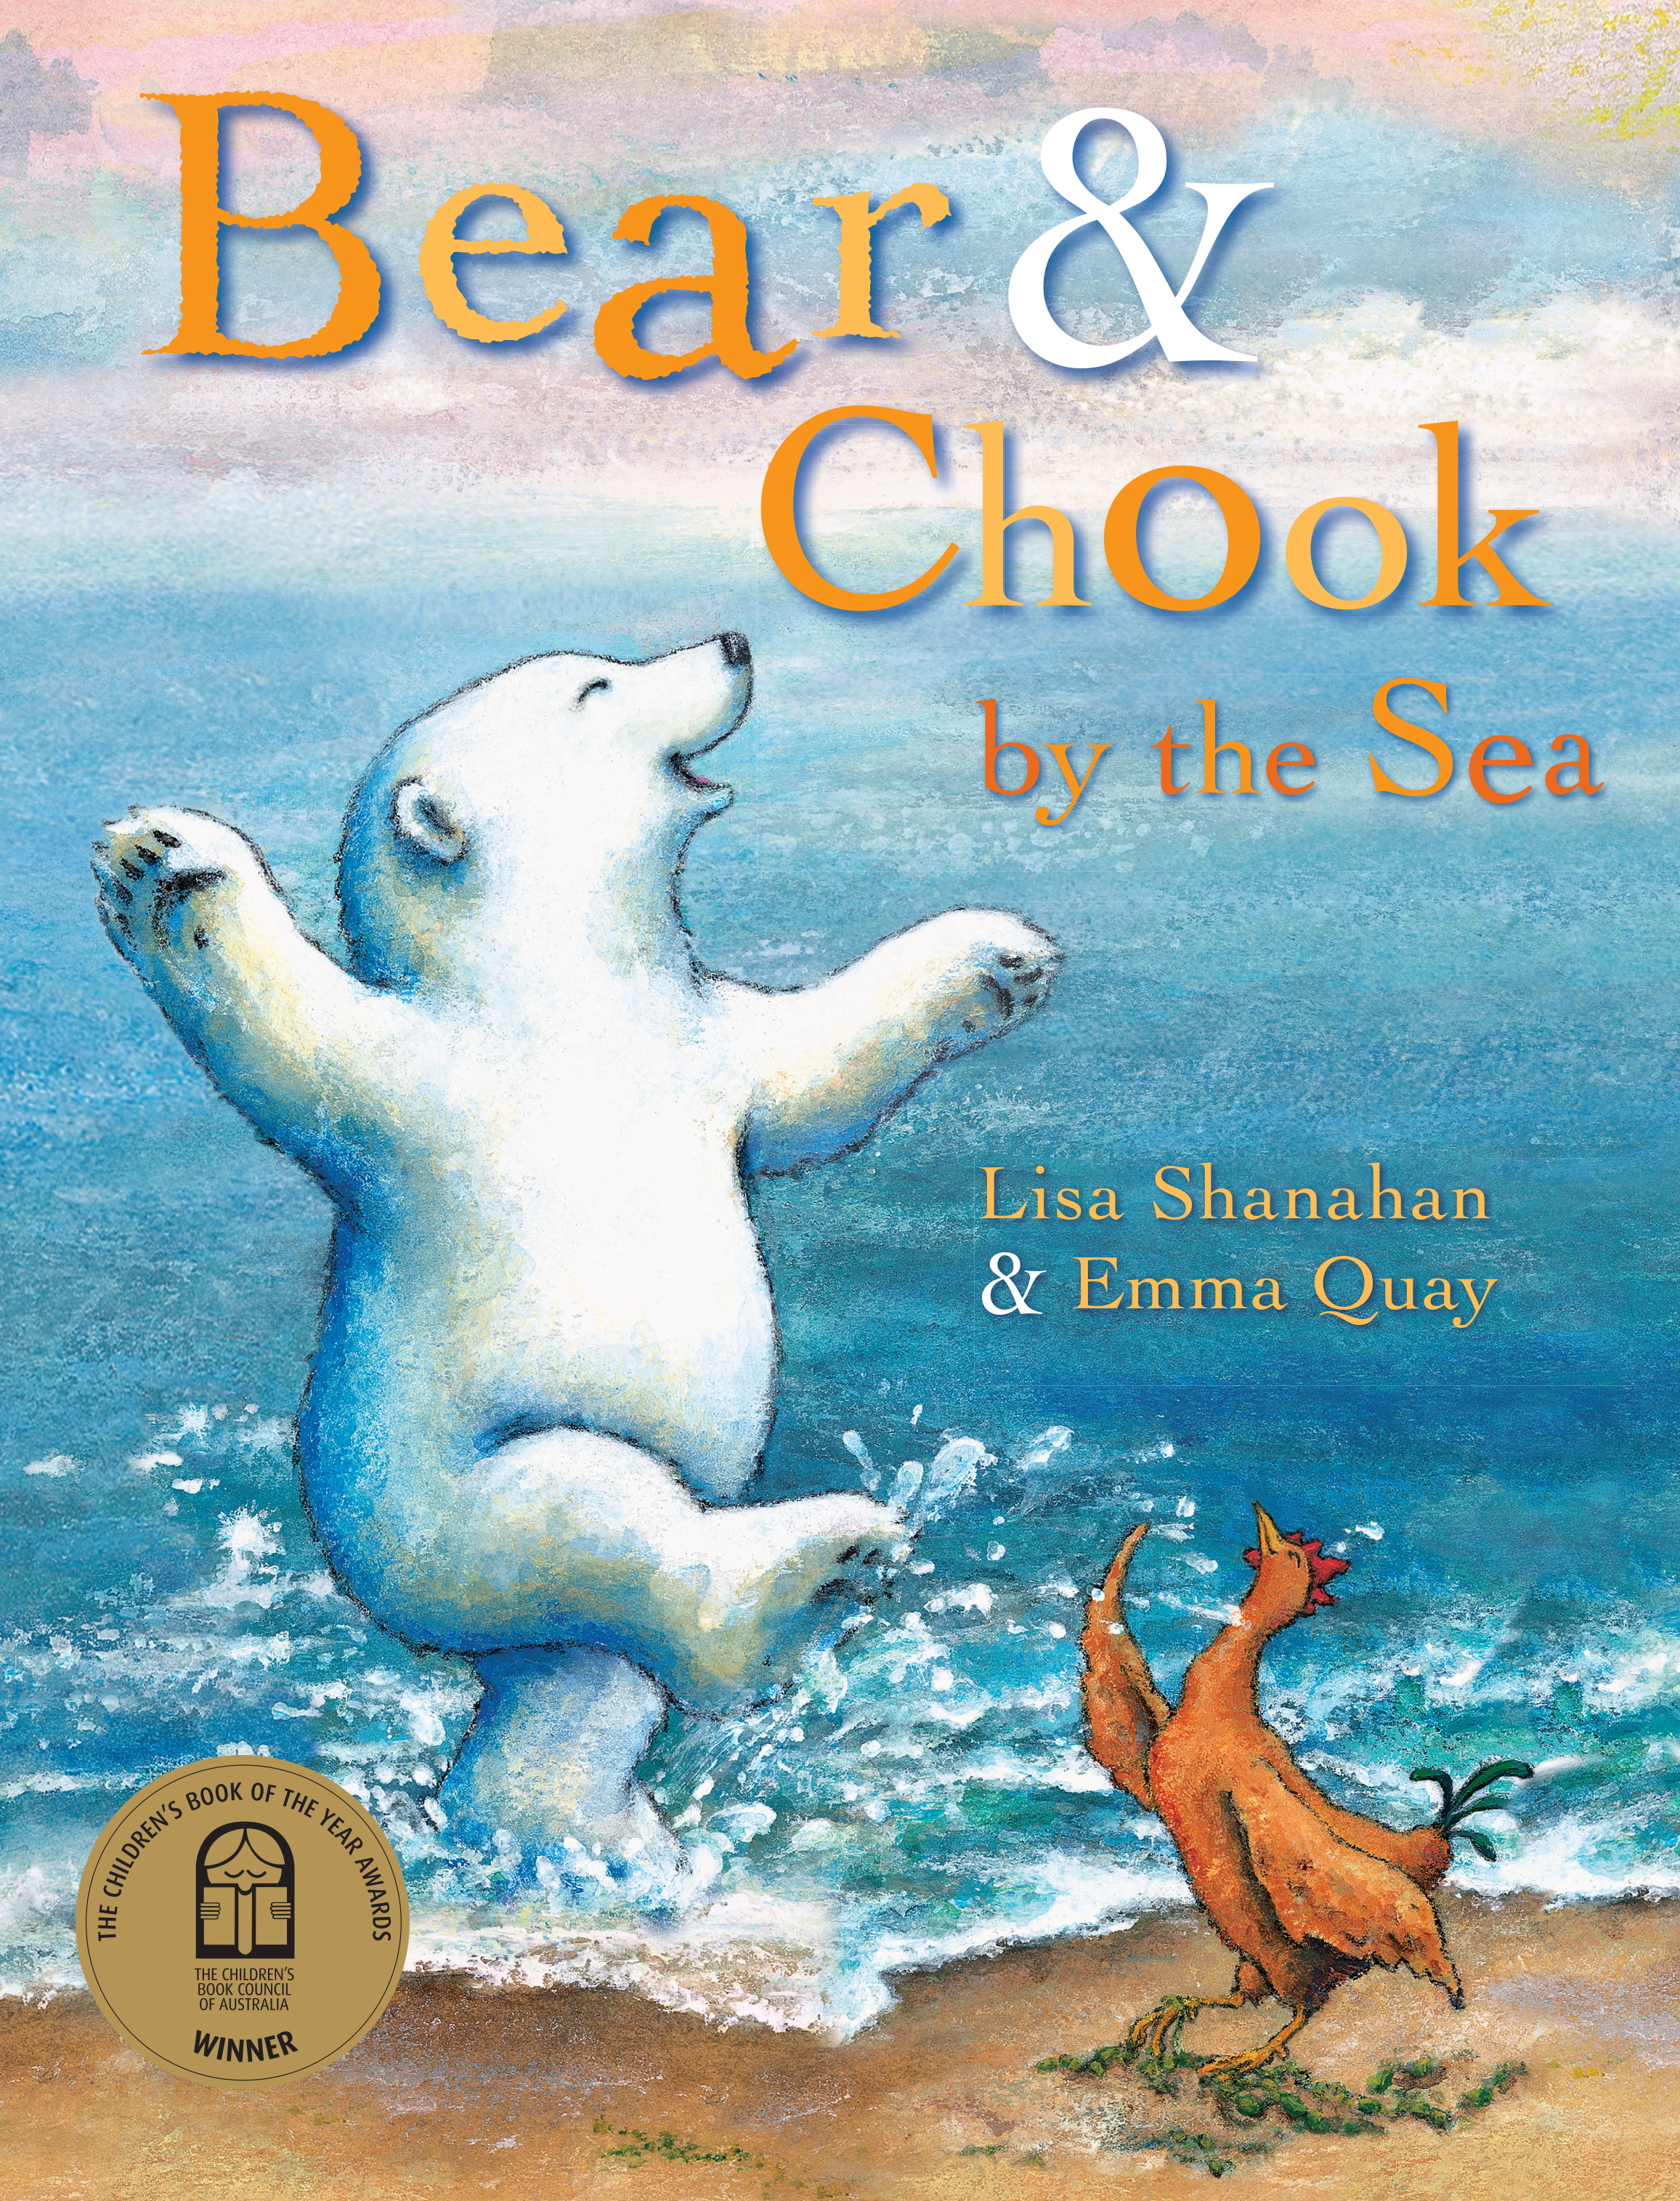 BEAR AND CHOOK BY THE SEA by Lisa Shanahan and Emma Quay (Lothian Books) - www.emmaquay.com